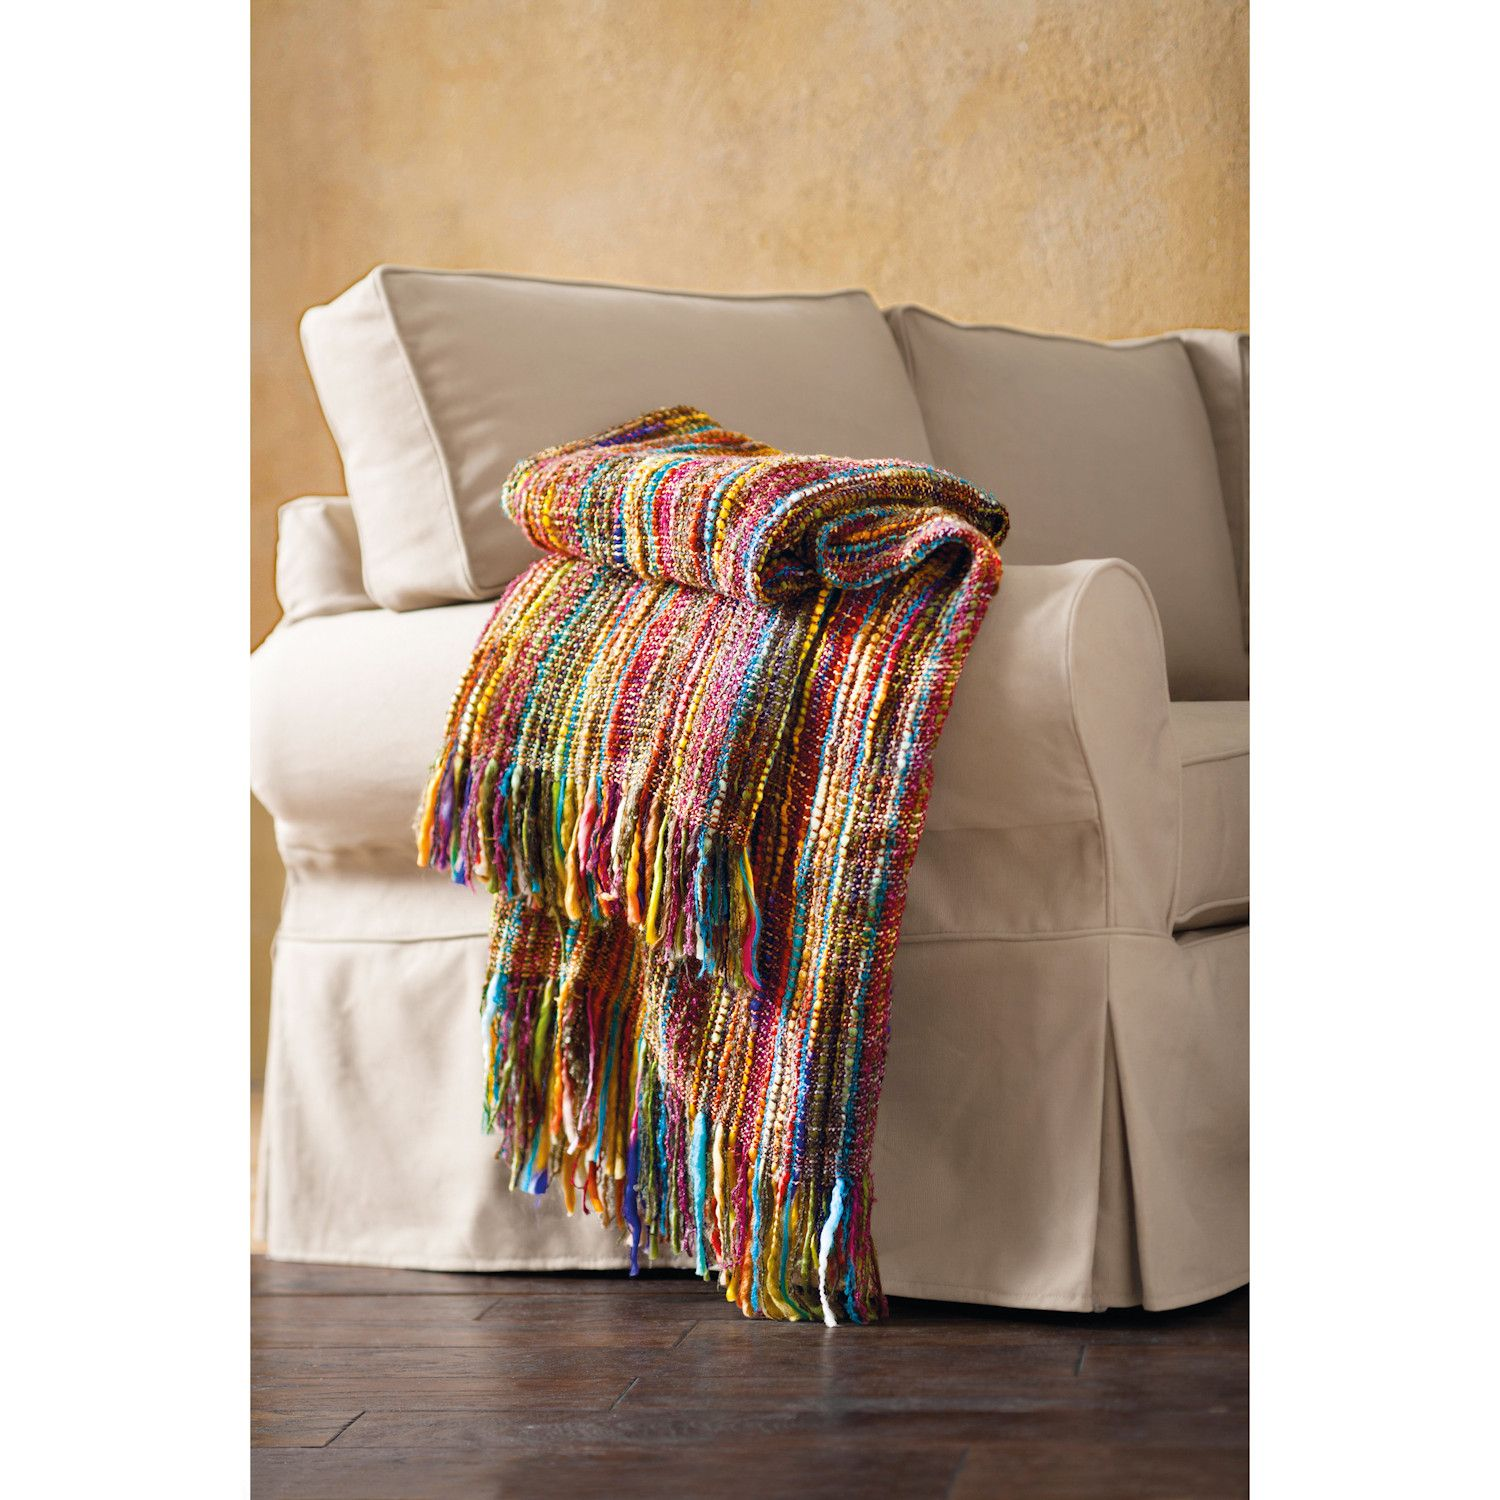 Chunky Knit Throw Blanket Bright Colors Striped Fringe